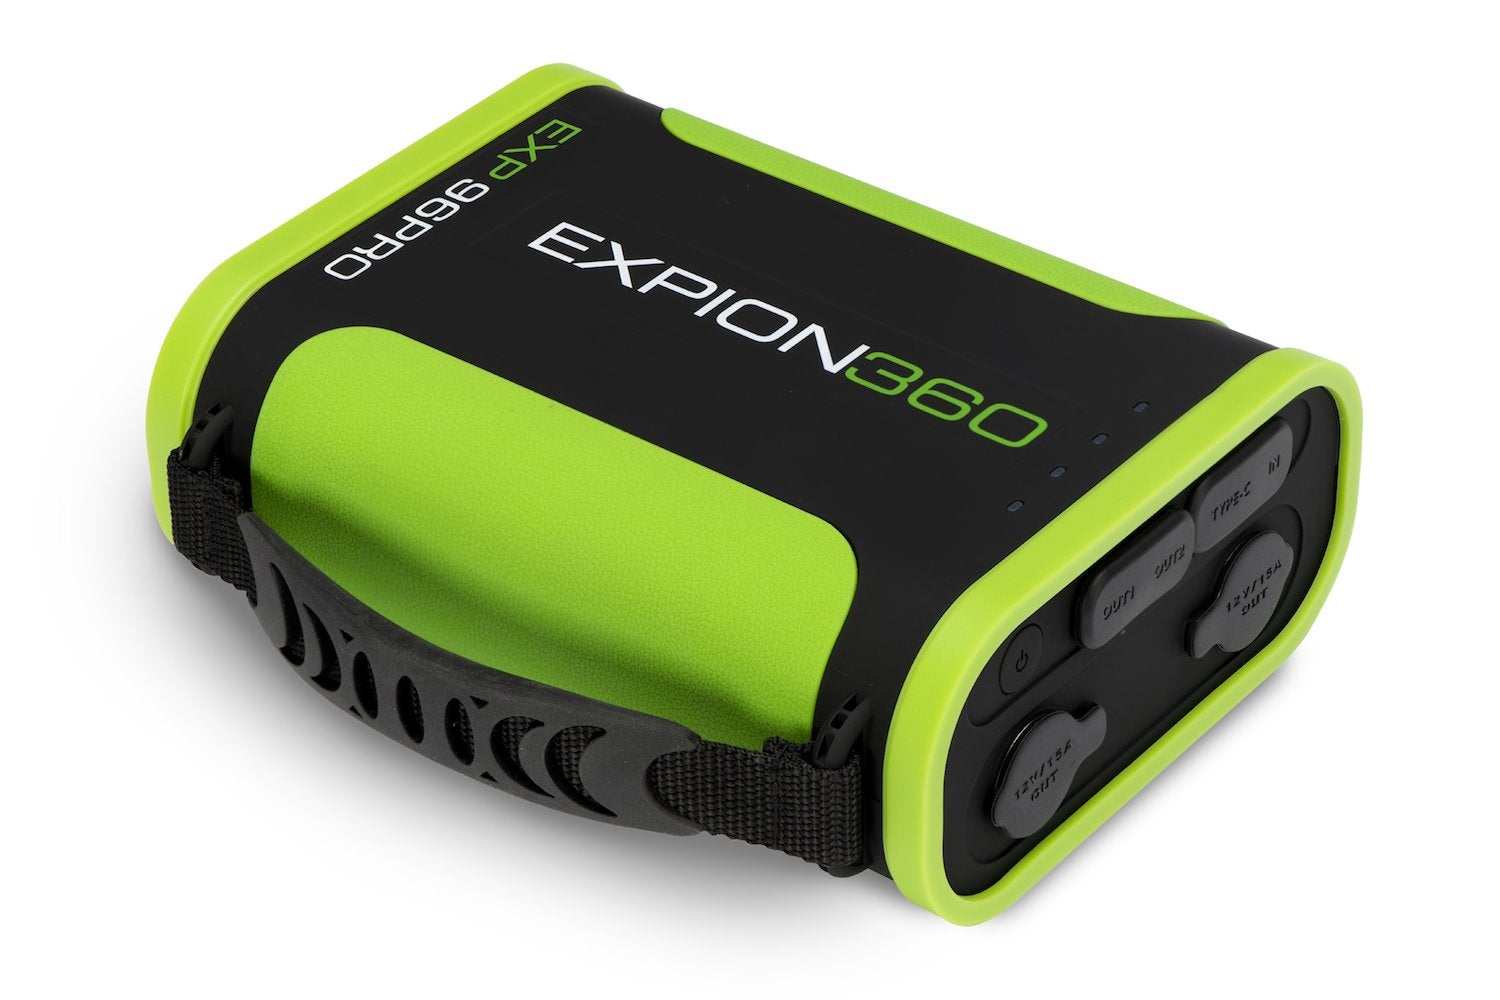 EXP96 Pro Lithium Ion Battery Bank